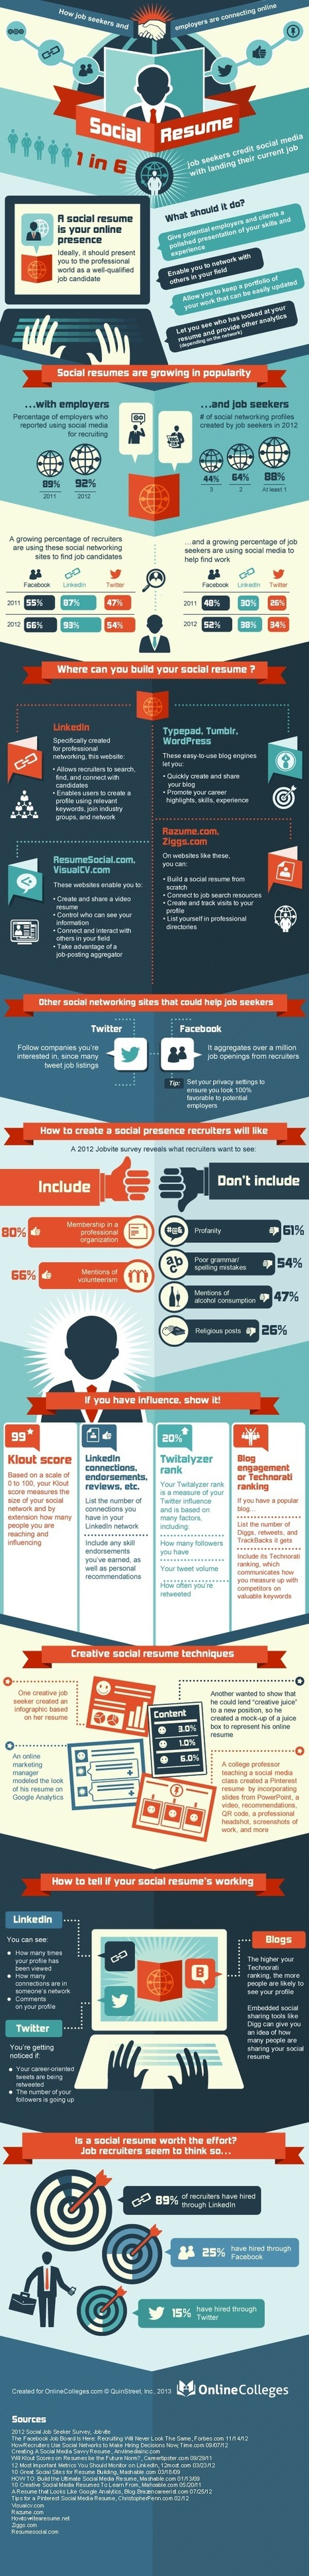 How Social Media Could Land You Your Next Job [INFOGRAPHIC] | Job Searching | Scoop.it